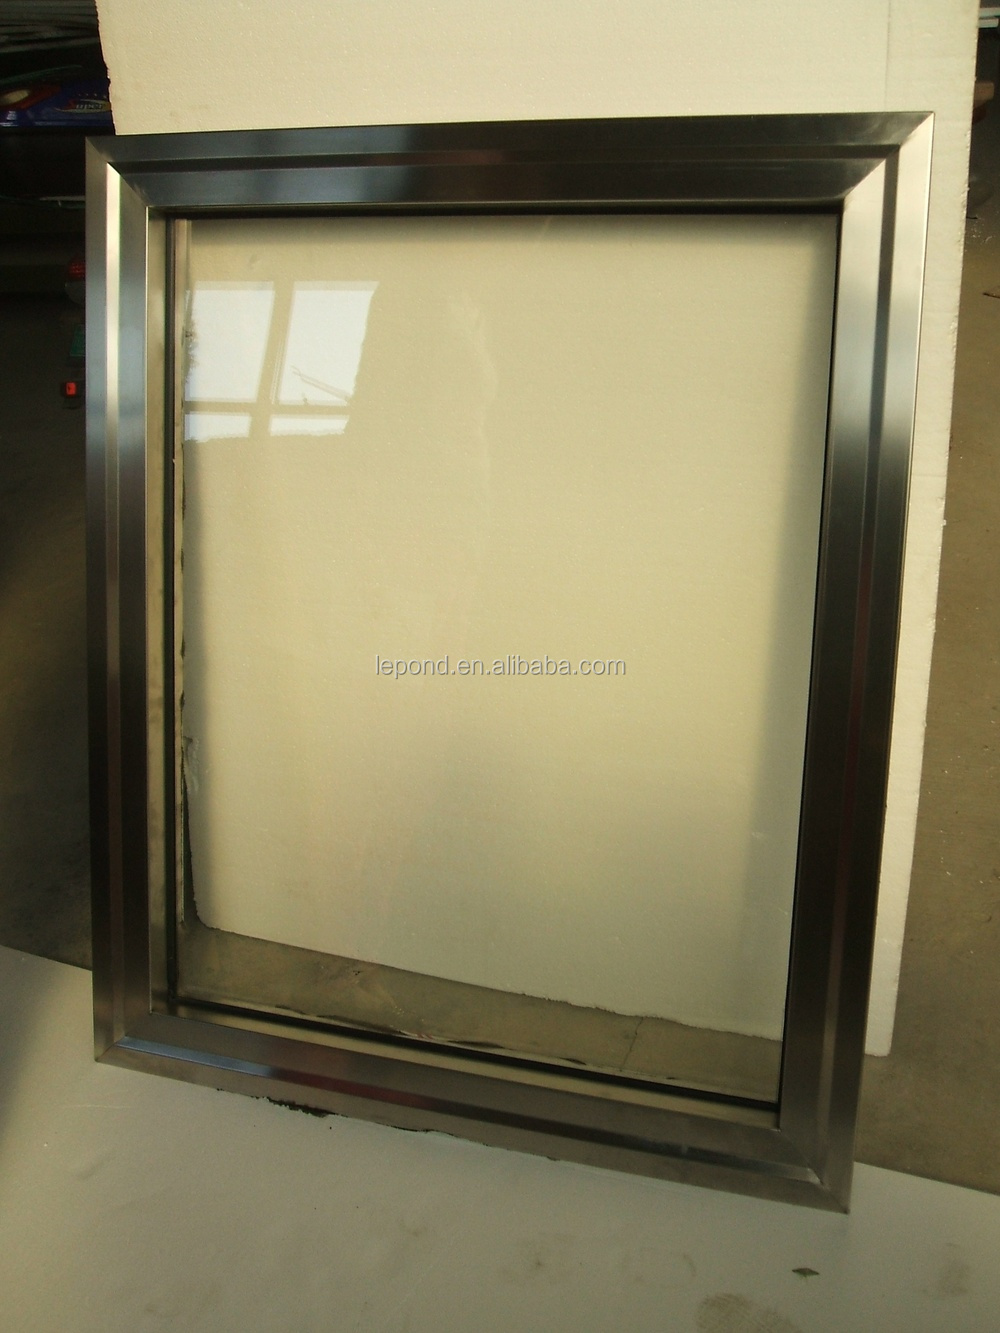 10mm X-ray Lead Glass,Protective glass/ Anti radiation Lead Glass